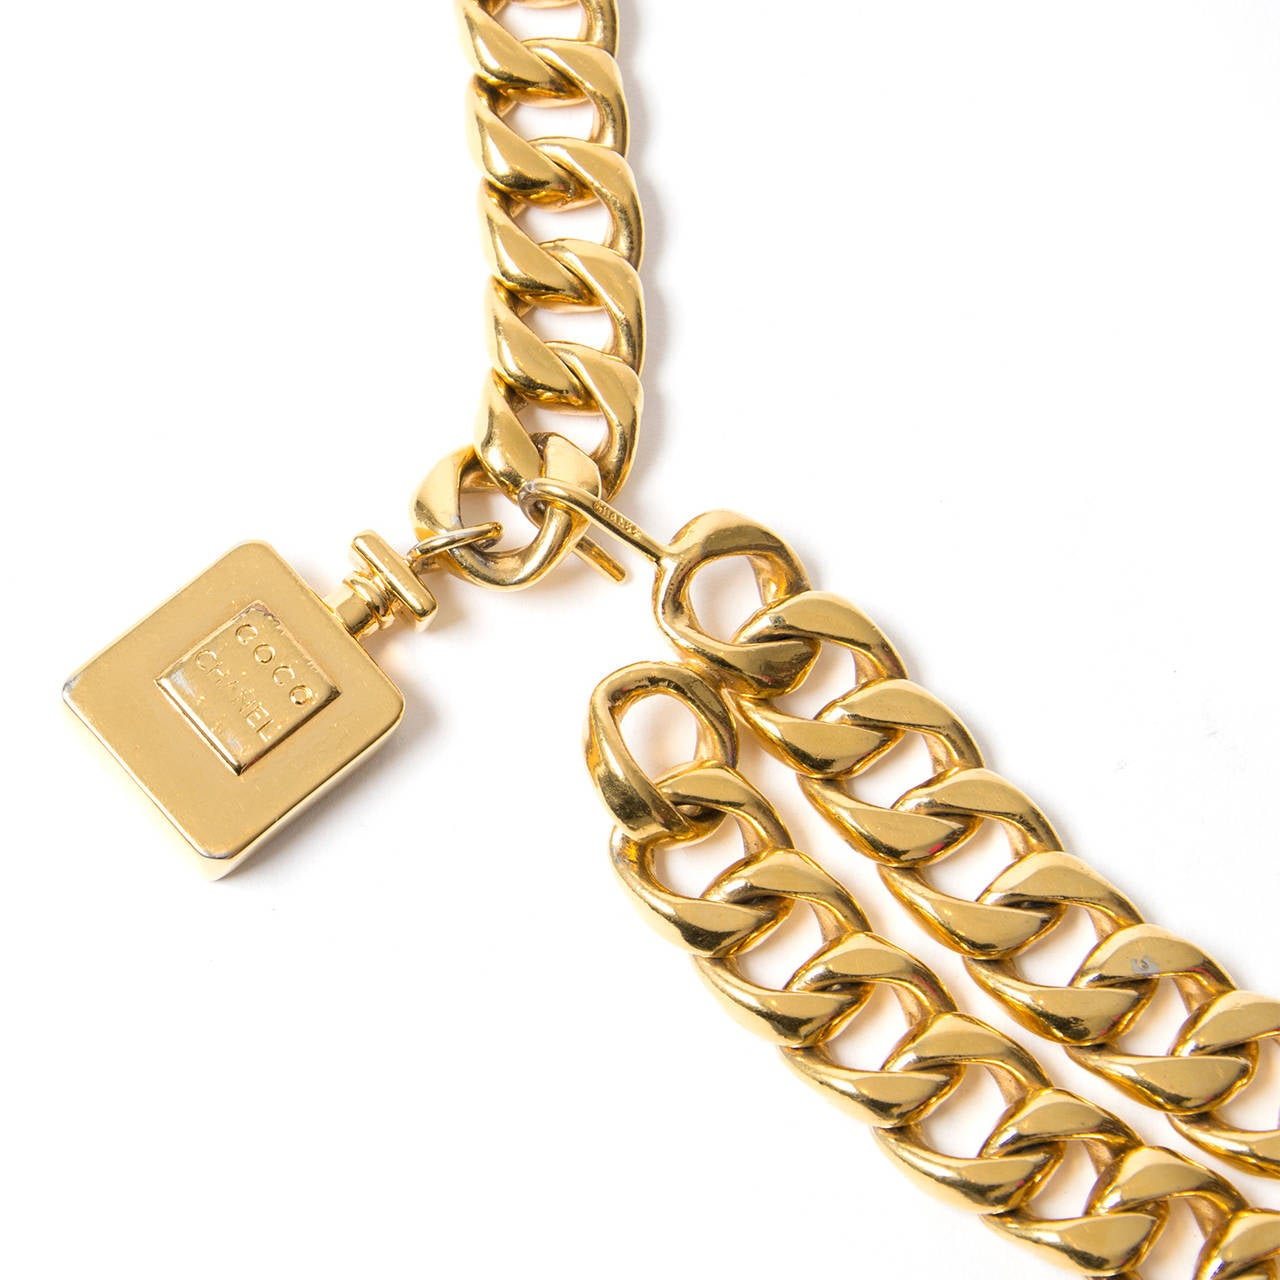 This Chanel Gold chain belt will make any outfit complete. 